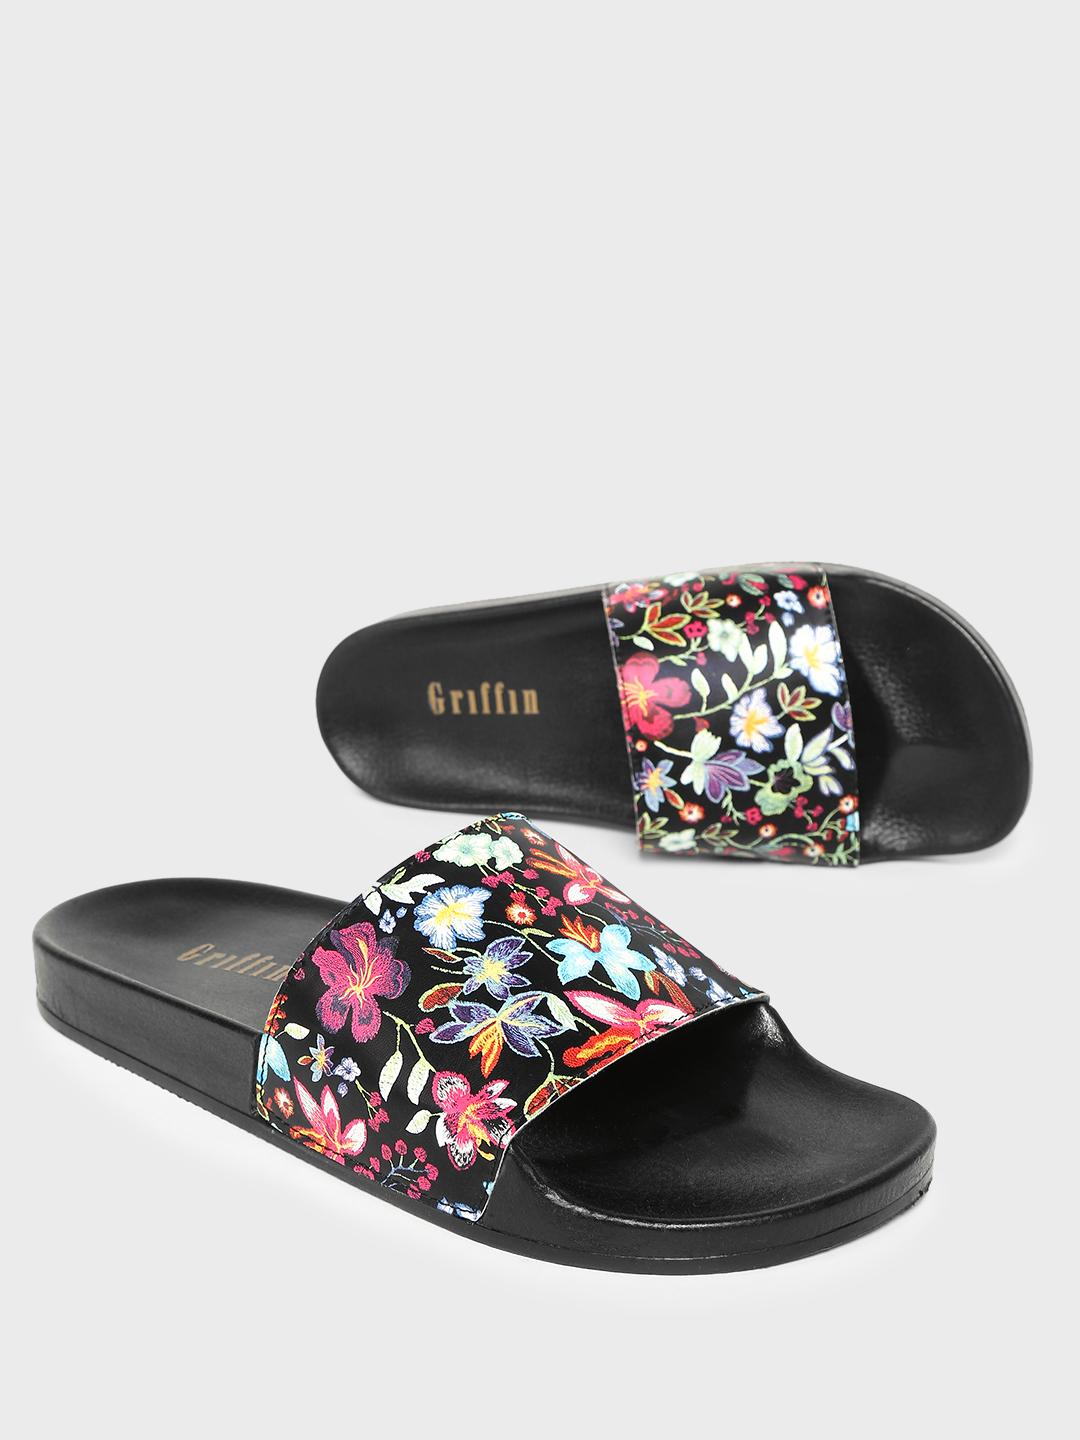 Griffin Multi Floral Print Slides 1